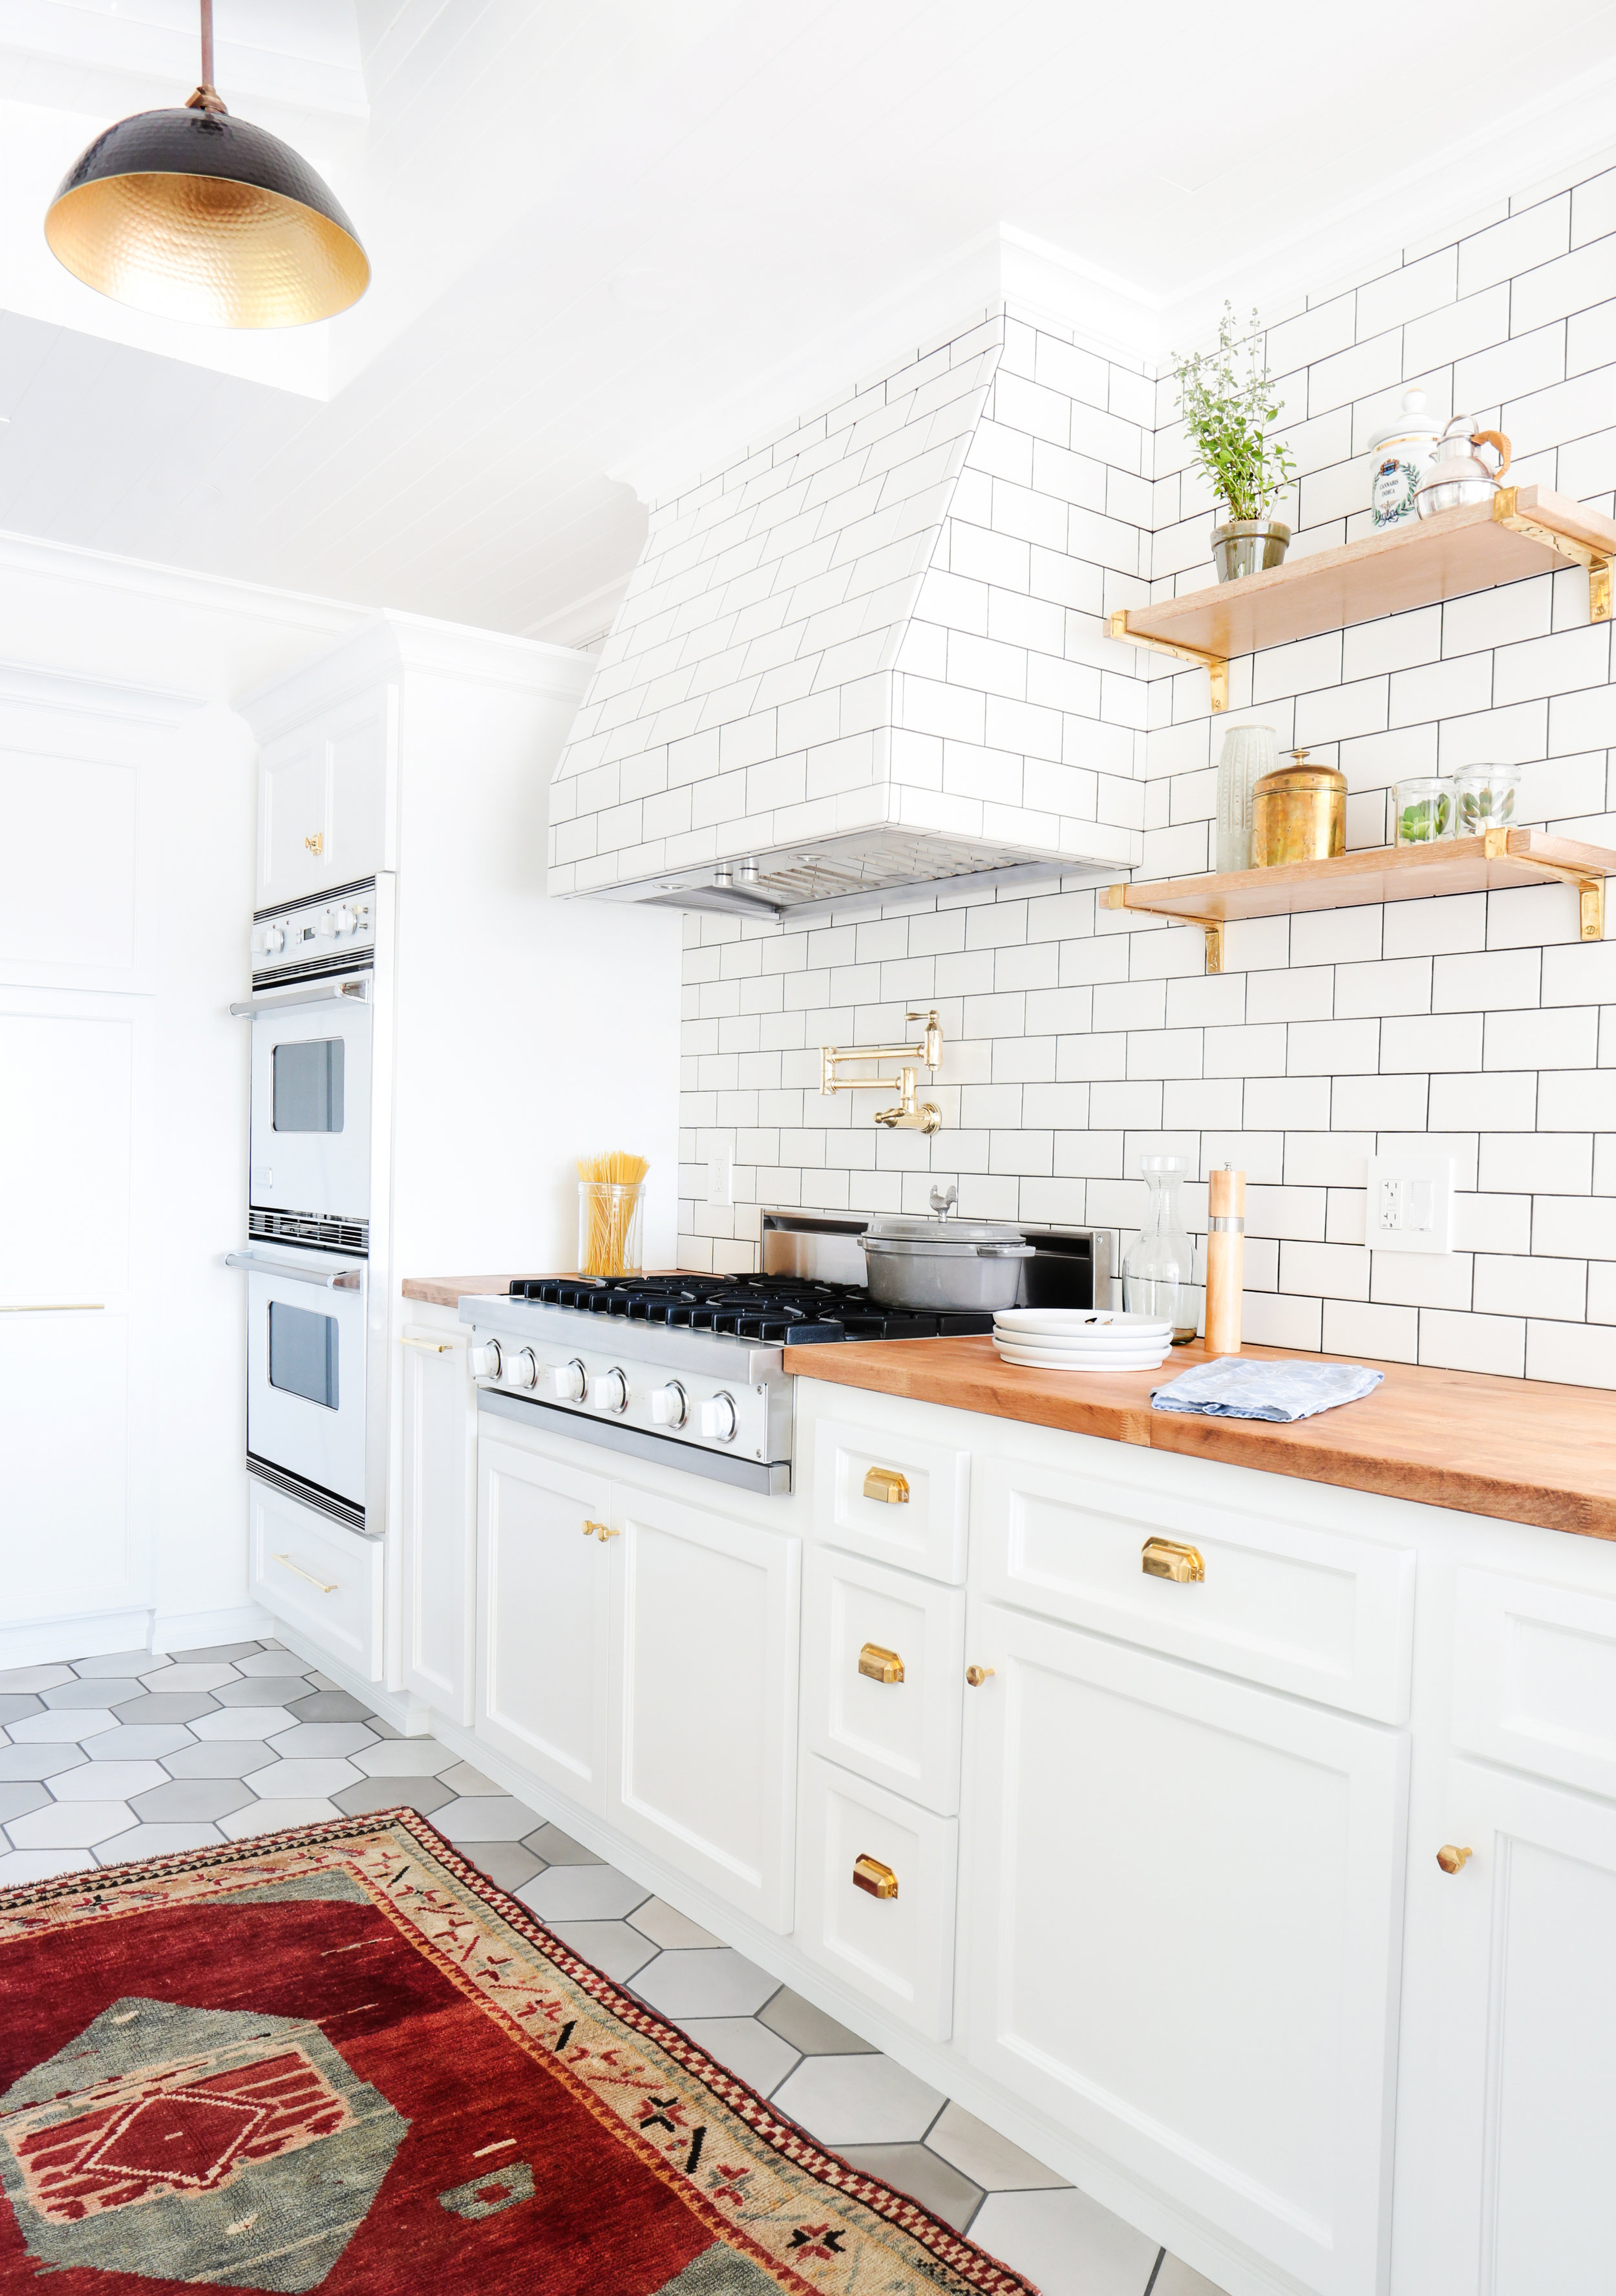 50 White Kitchen Cabinets To Brighten Up Your Cooking Space - Kitchen Cabinet Door Ideas - From sleek to country chic, we've got every style covered. BY KARA LADD  Bohemian ChicAccessorize with striking gold hardware for a glam touch.Design by Stefani Stein Inc.